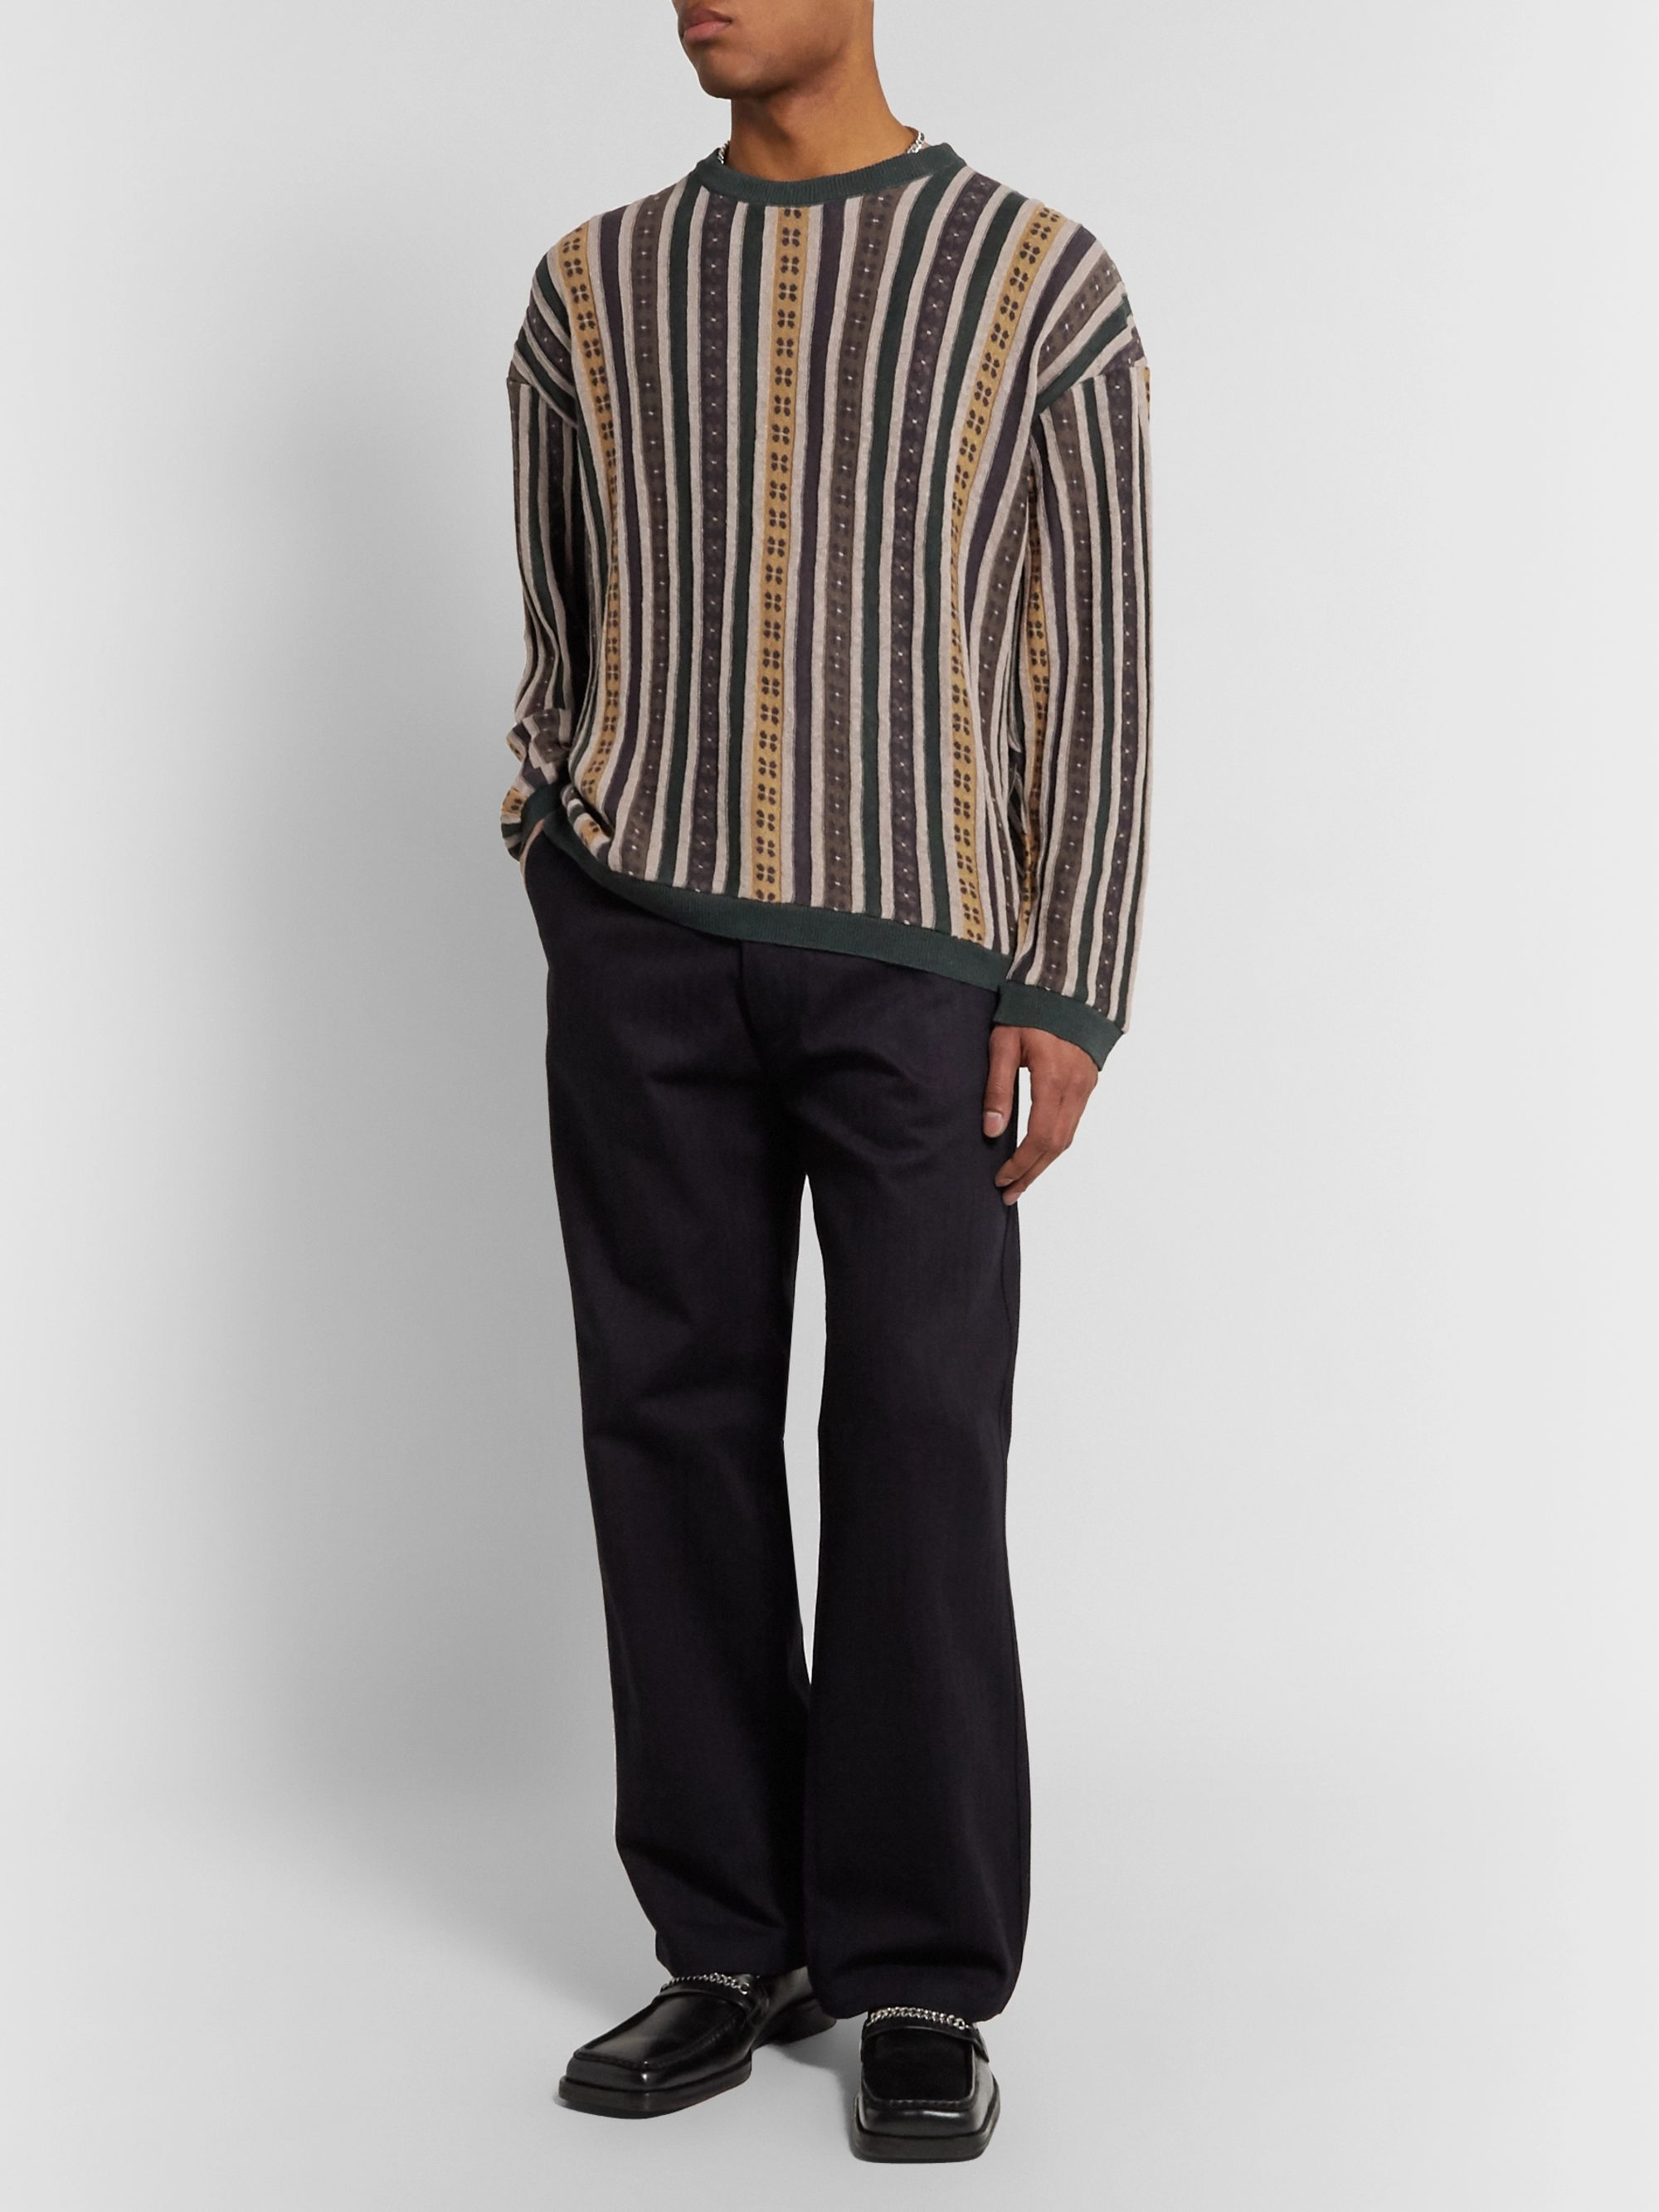 Our Legacy Sonar Striped Intarsia Linen Sweater